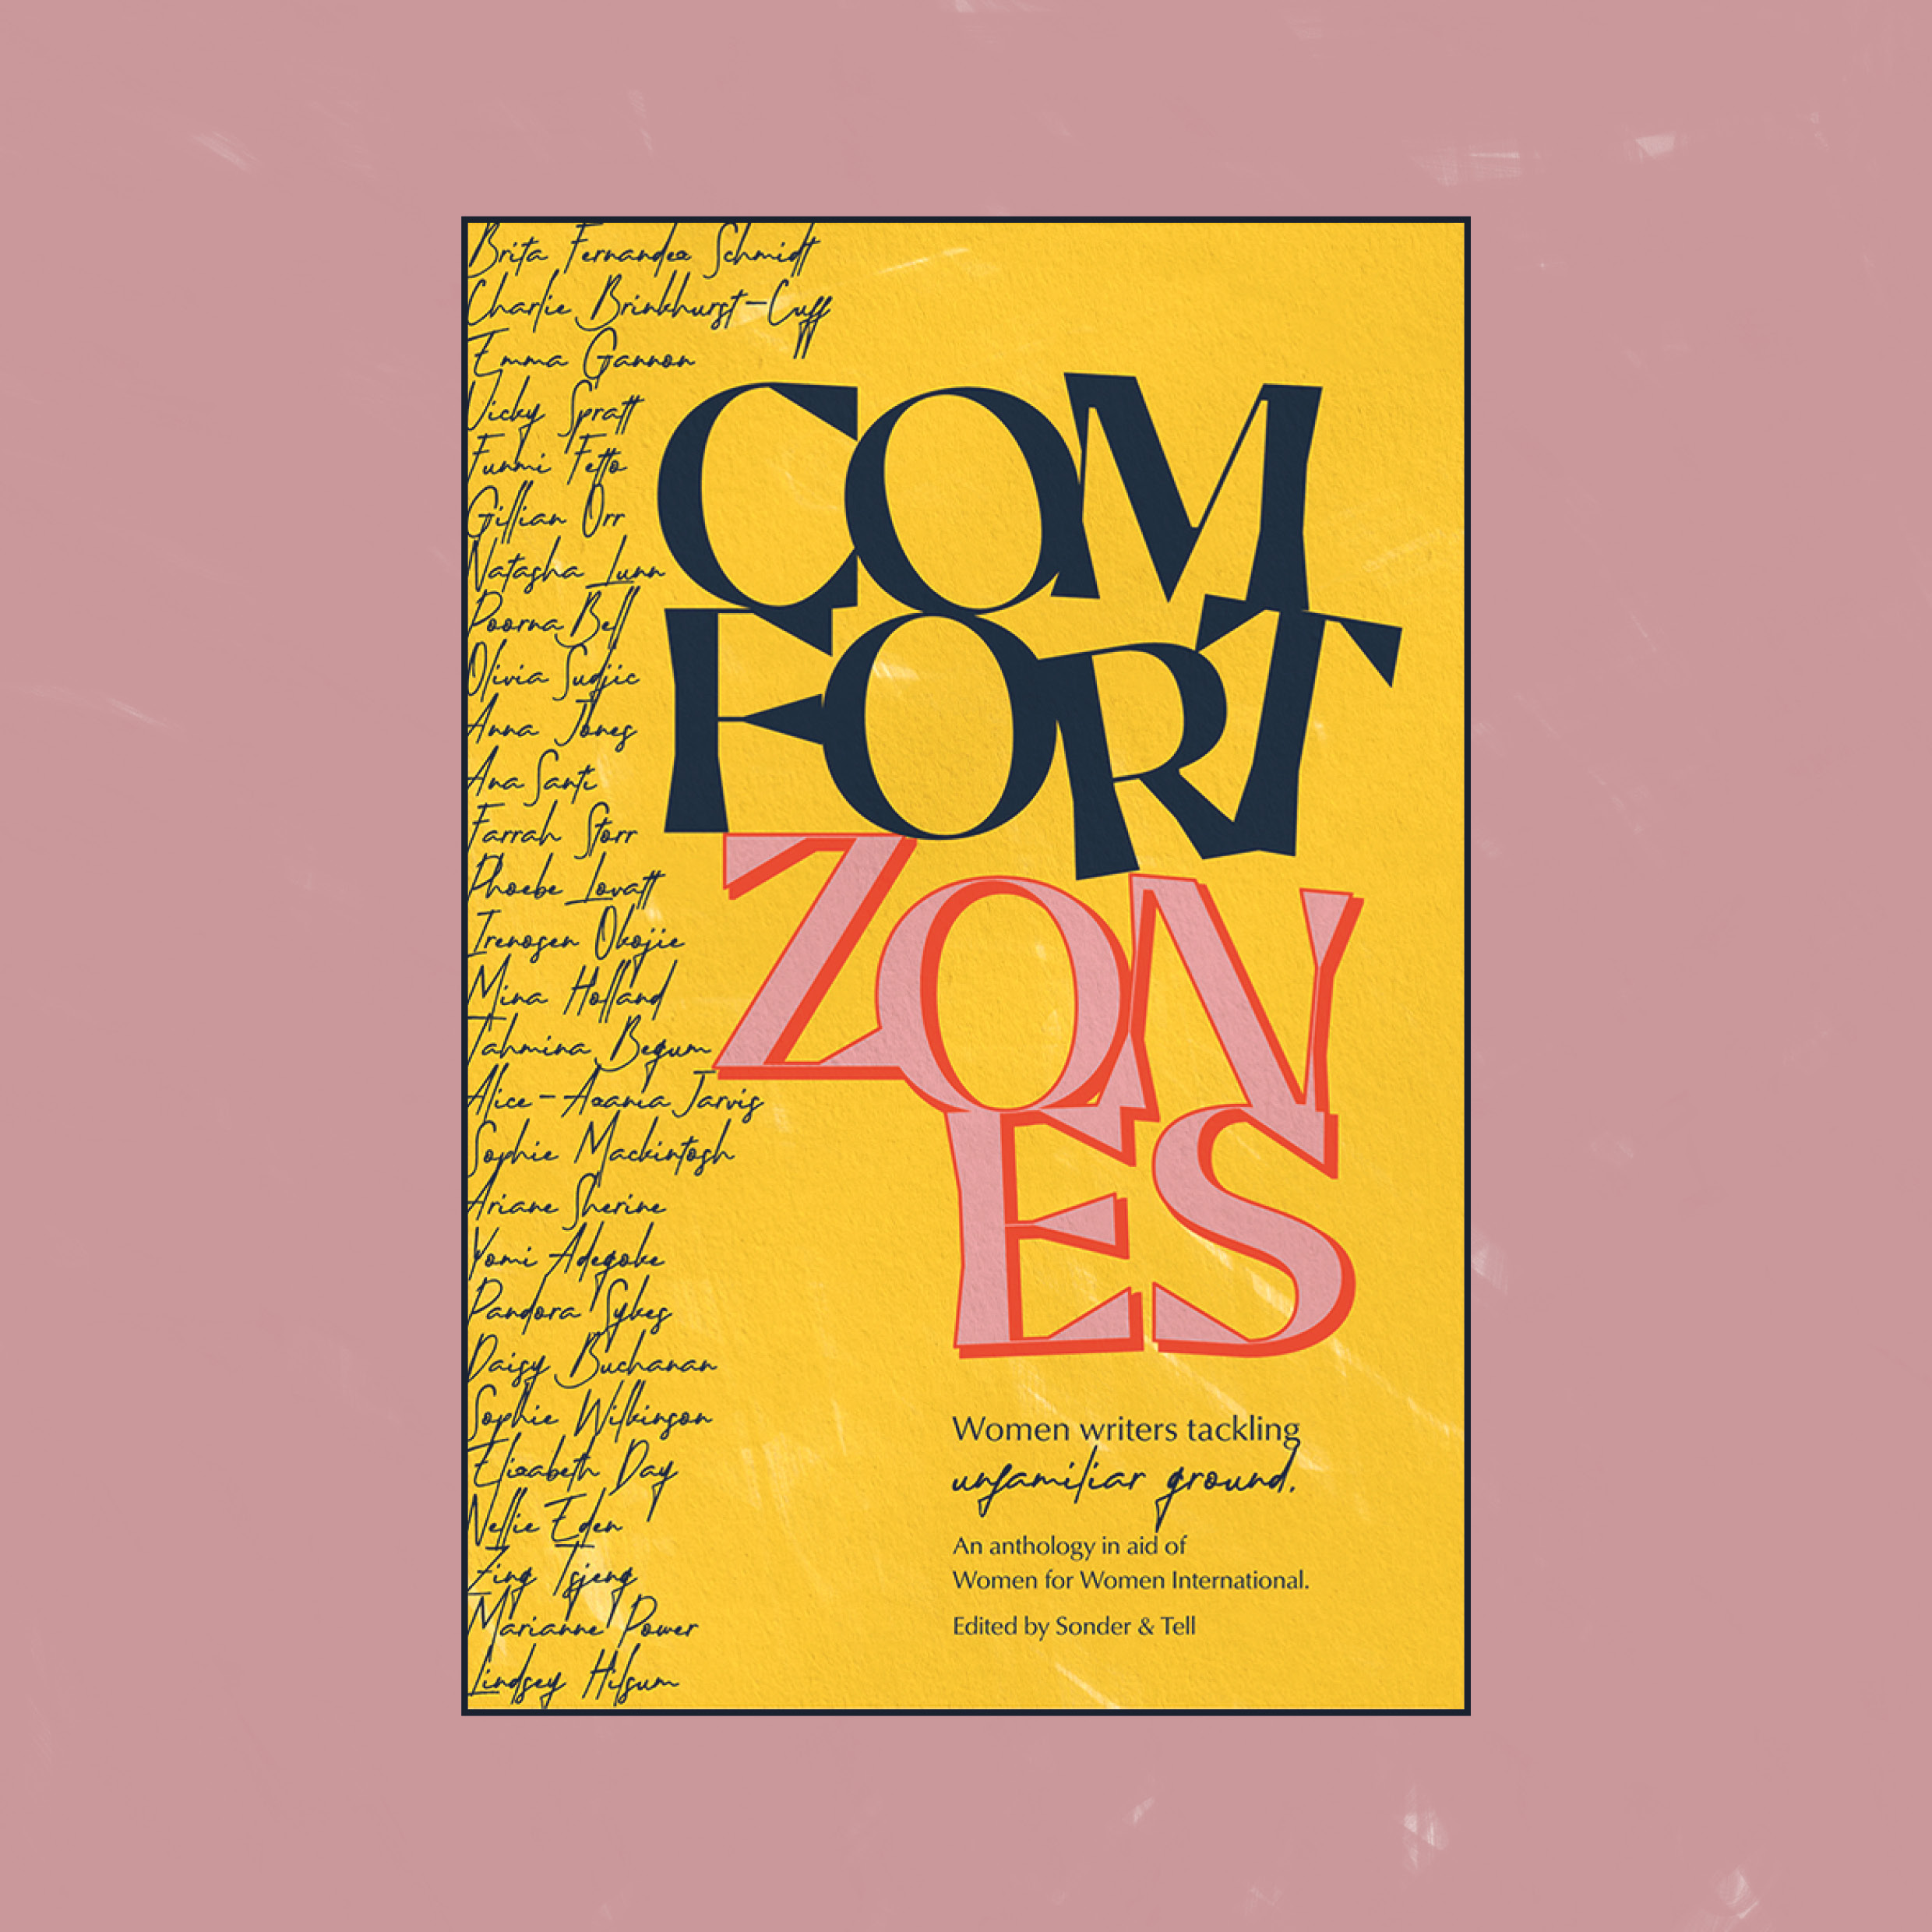 Comfort Zones is published  - Over Christmas I interviewed my mother; we talked about her childhood growing up in a psychiatric hospital in the 1950s, becoming an actress in '60s London, and her late-life career appearing at horror conventions. It was a strange experience, a kind of exercise in social history that started personal but ended up becoming a broader conversation about our generations' different experiences and changing attitudes towards everything from contraception to mental health. Now our conversation has been published in this beautiful book to raise money for Women for Women International. There is also writing from Olivia Sudjic, Farrah Storr, Elizabeth Day, Zing Tsjing, Emma Gannon, Victoria Spratt, Natasha Lunn, Poorna Bell and more. 100% of the £9.99 price goes to Women for Women International. You can order one here.